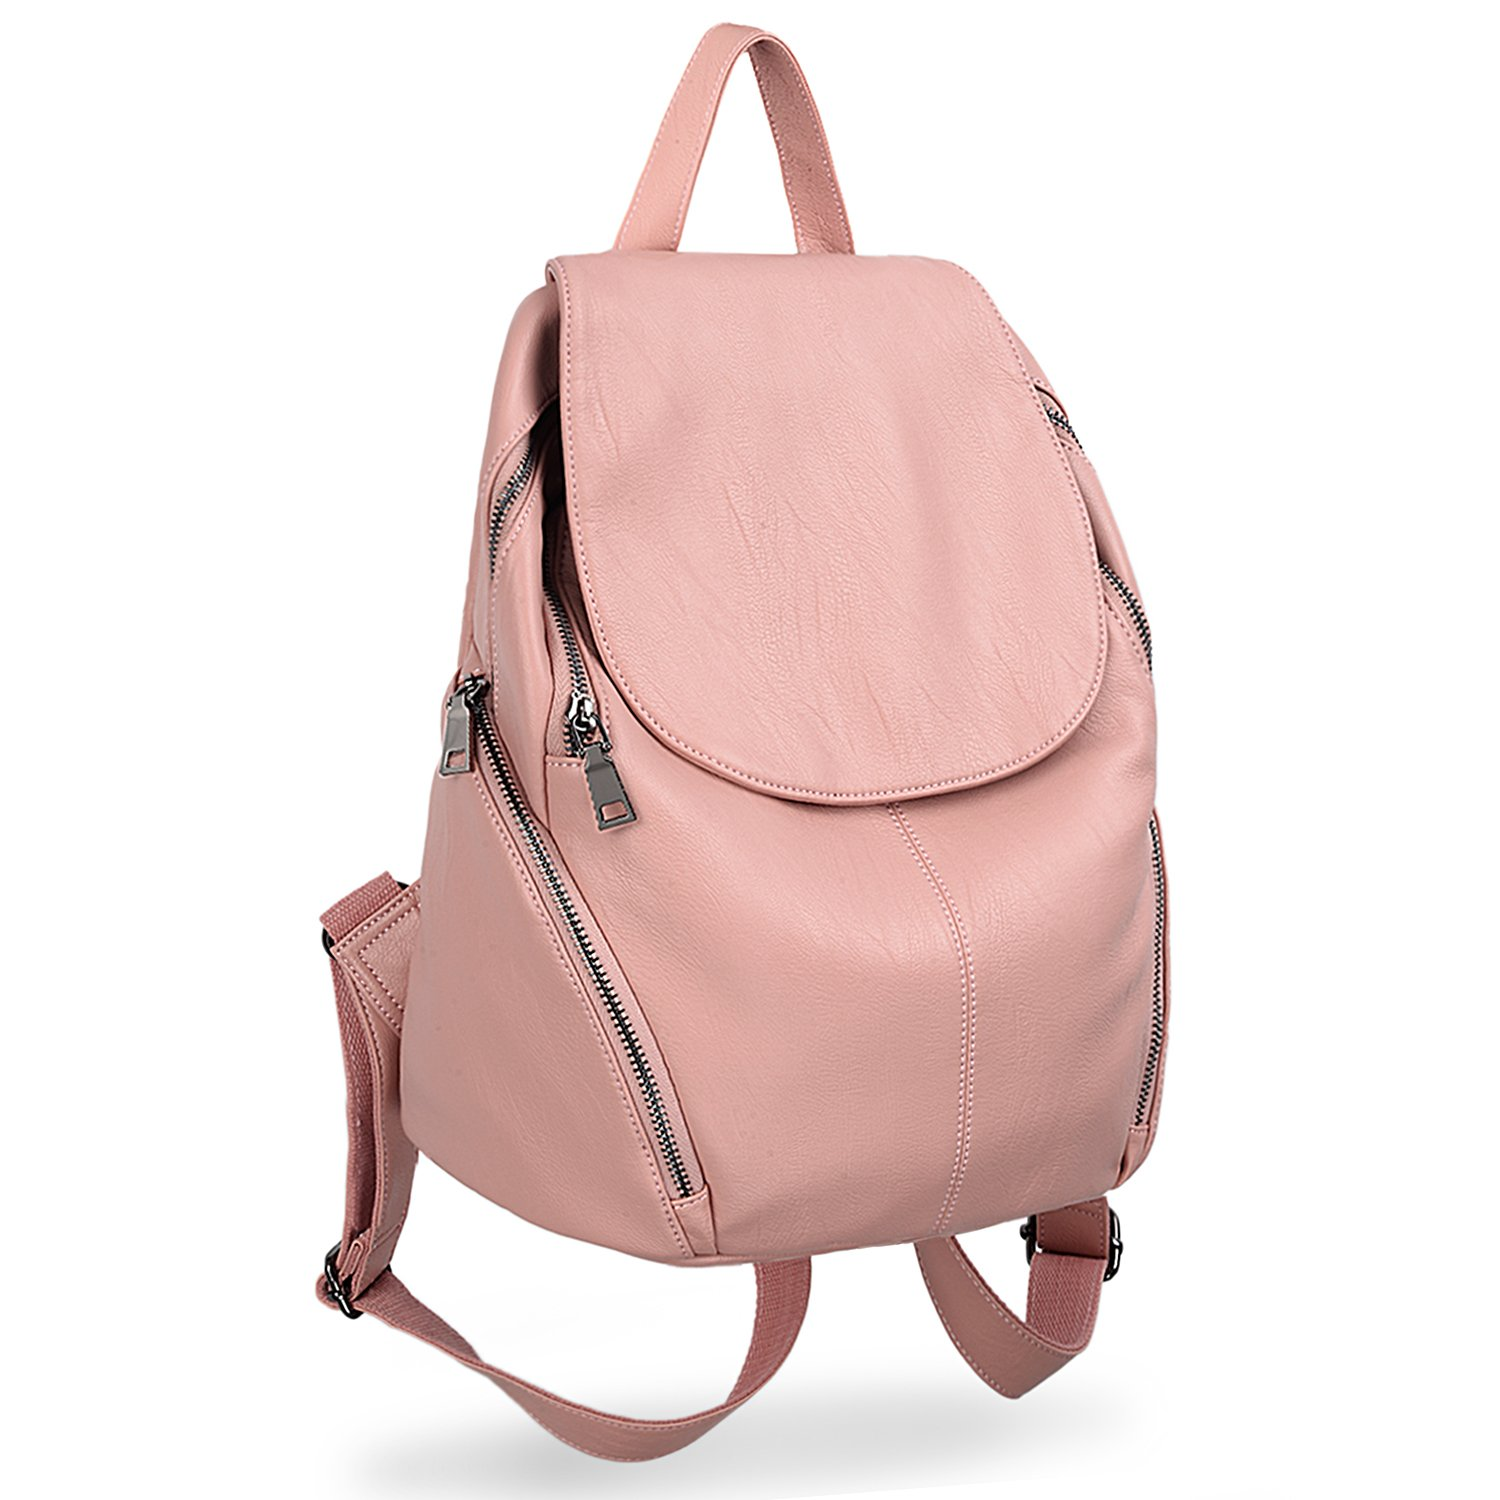 UTO Women Backpack Purse PU Washed Leather Large Capacity Ladies Rucksack Shoulder Bag Pink